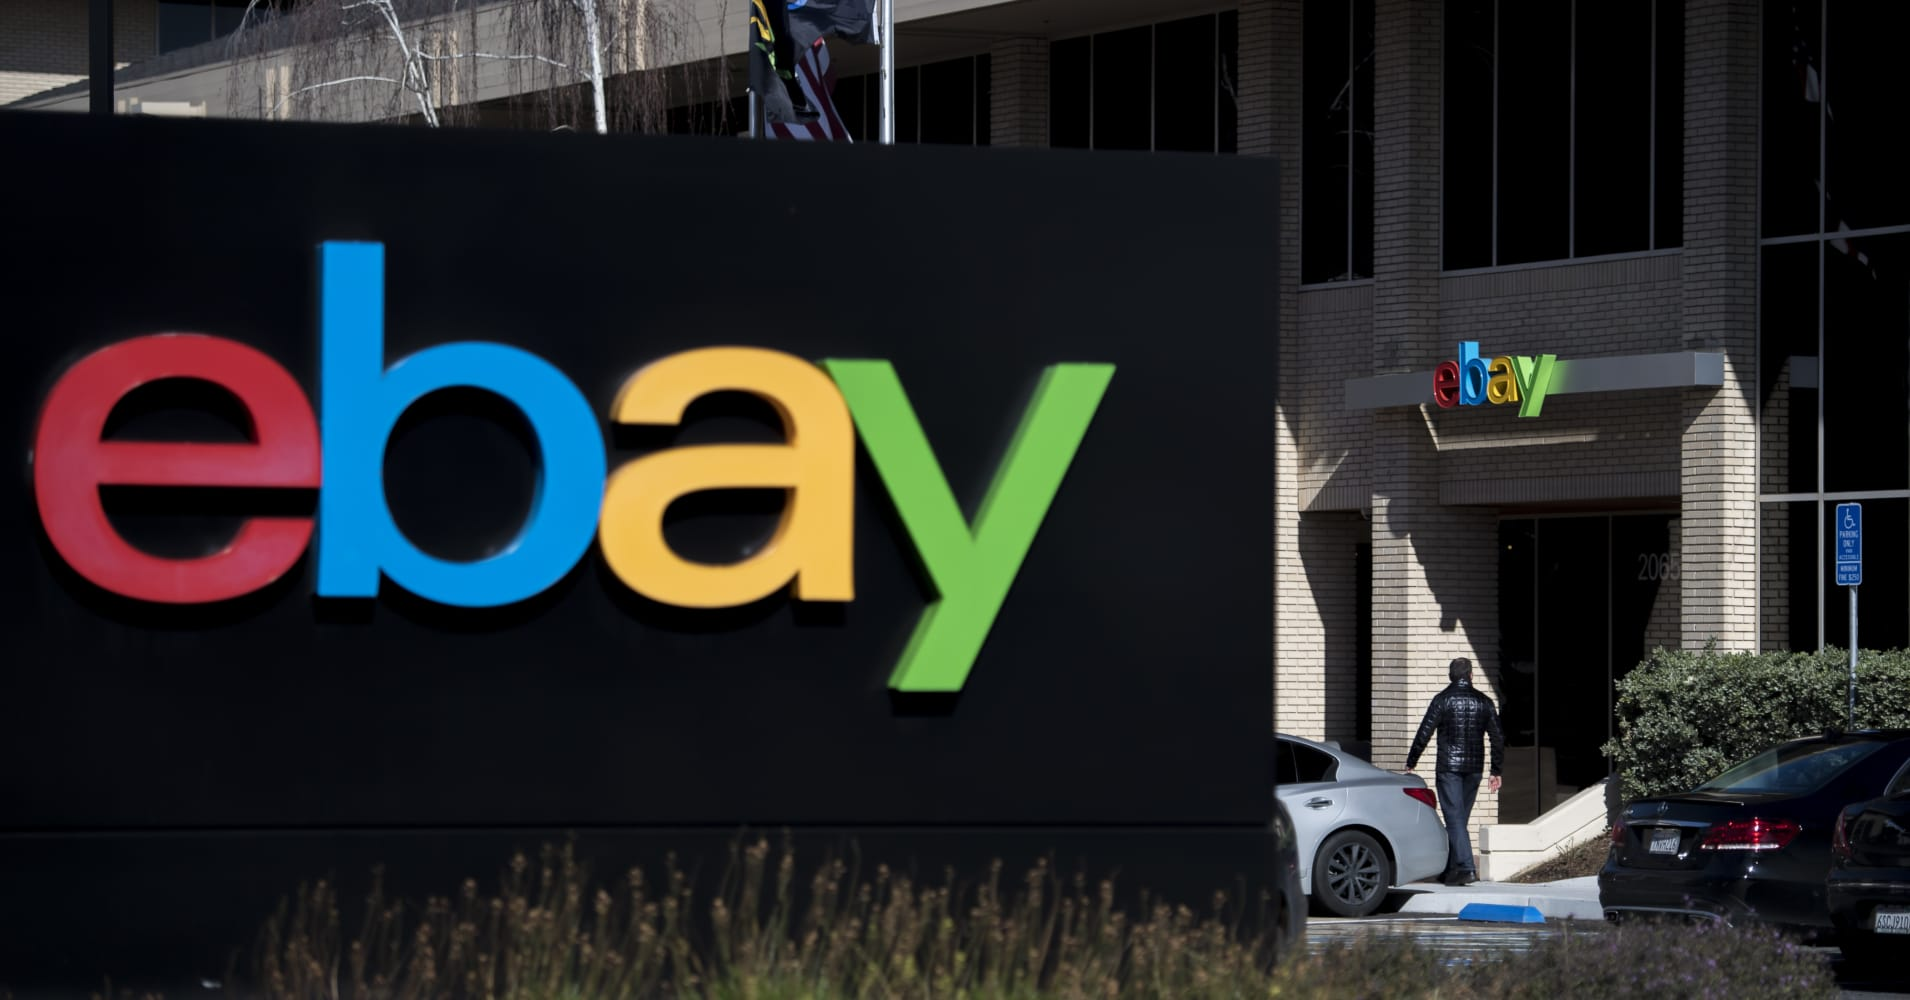 Ebay to exit Facebook's Libra association, follows PayPal's footsteps